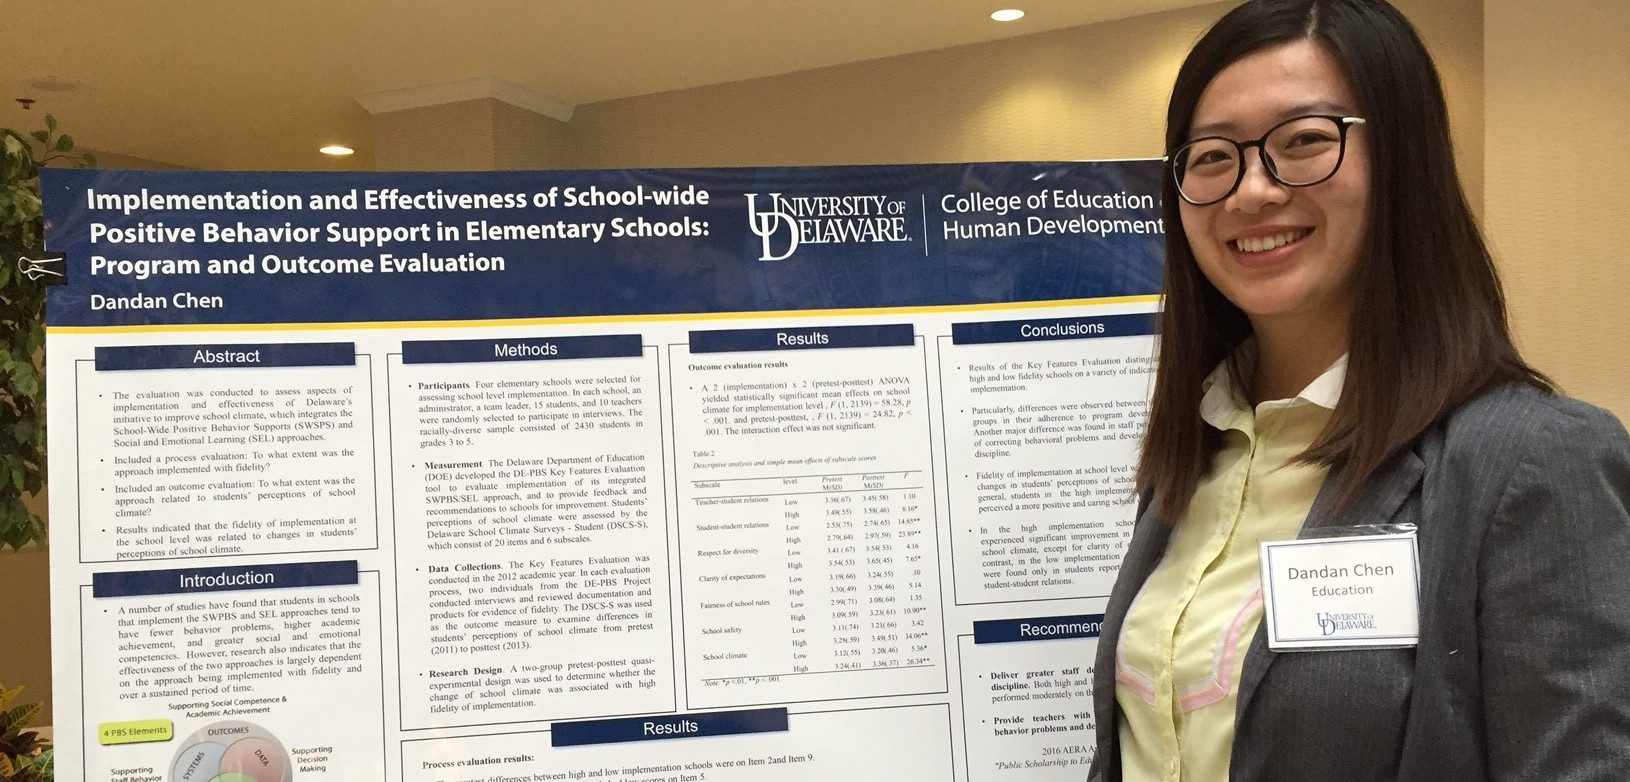 Doctoral student presents research in evaluation, measurement, and statistics with a poster at a college symposium.